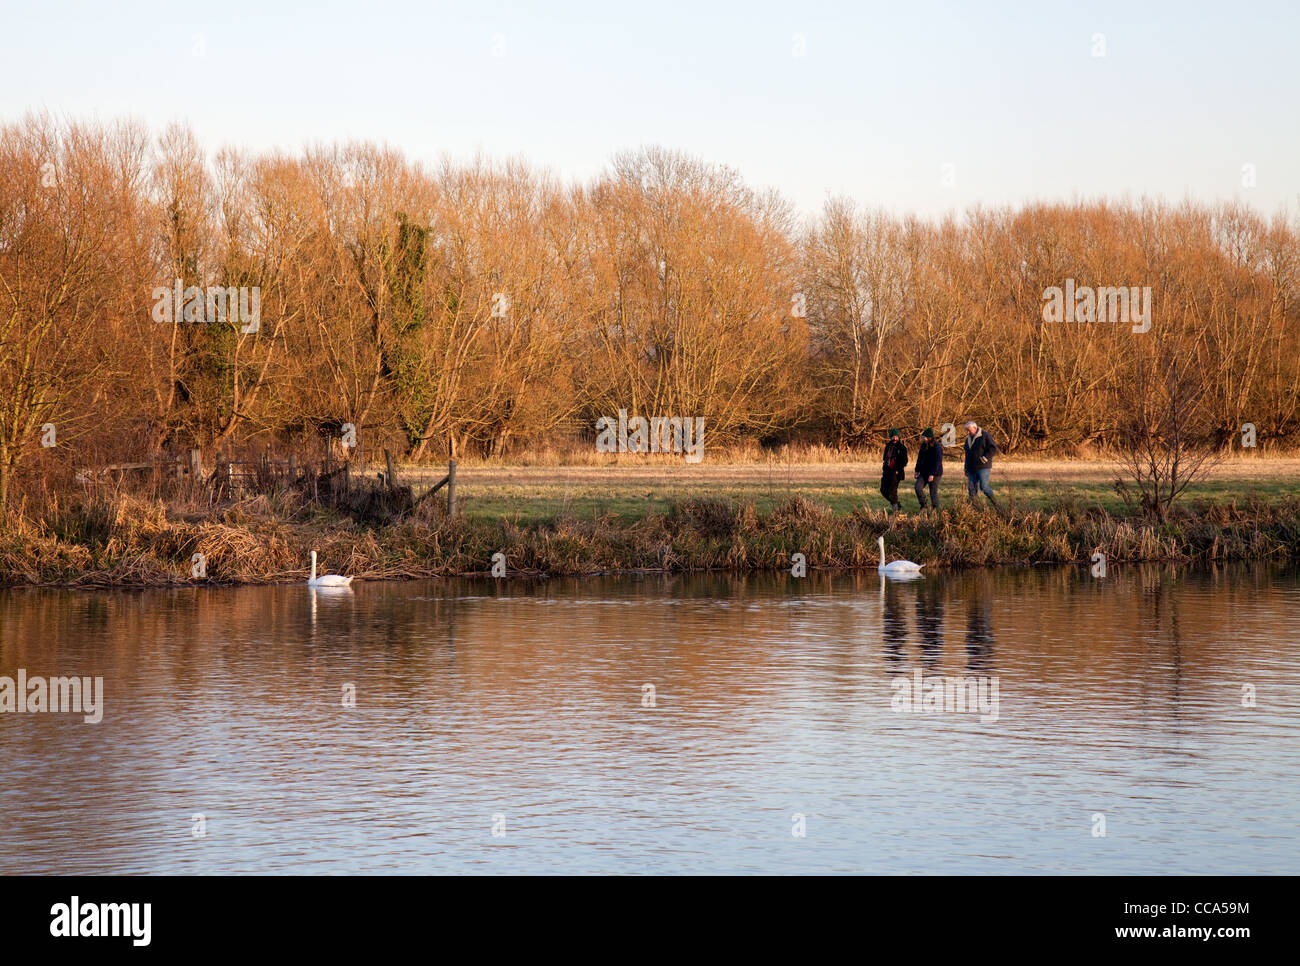 Walkers on the Thames path towpath at Moulsford, Oxfordshire UK - Stock Image